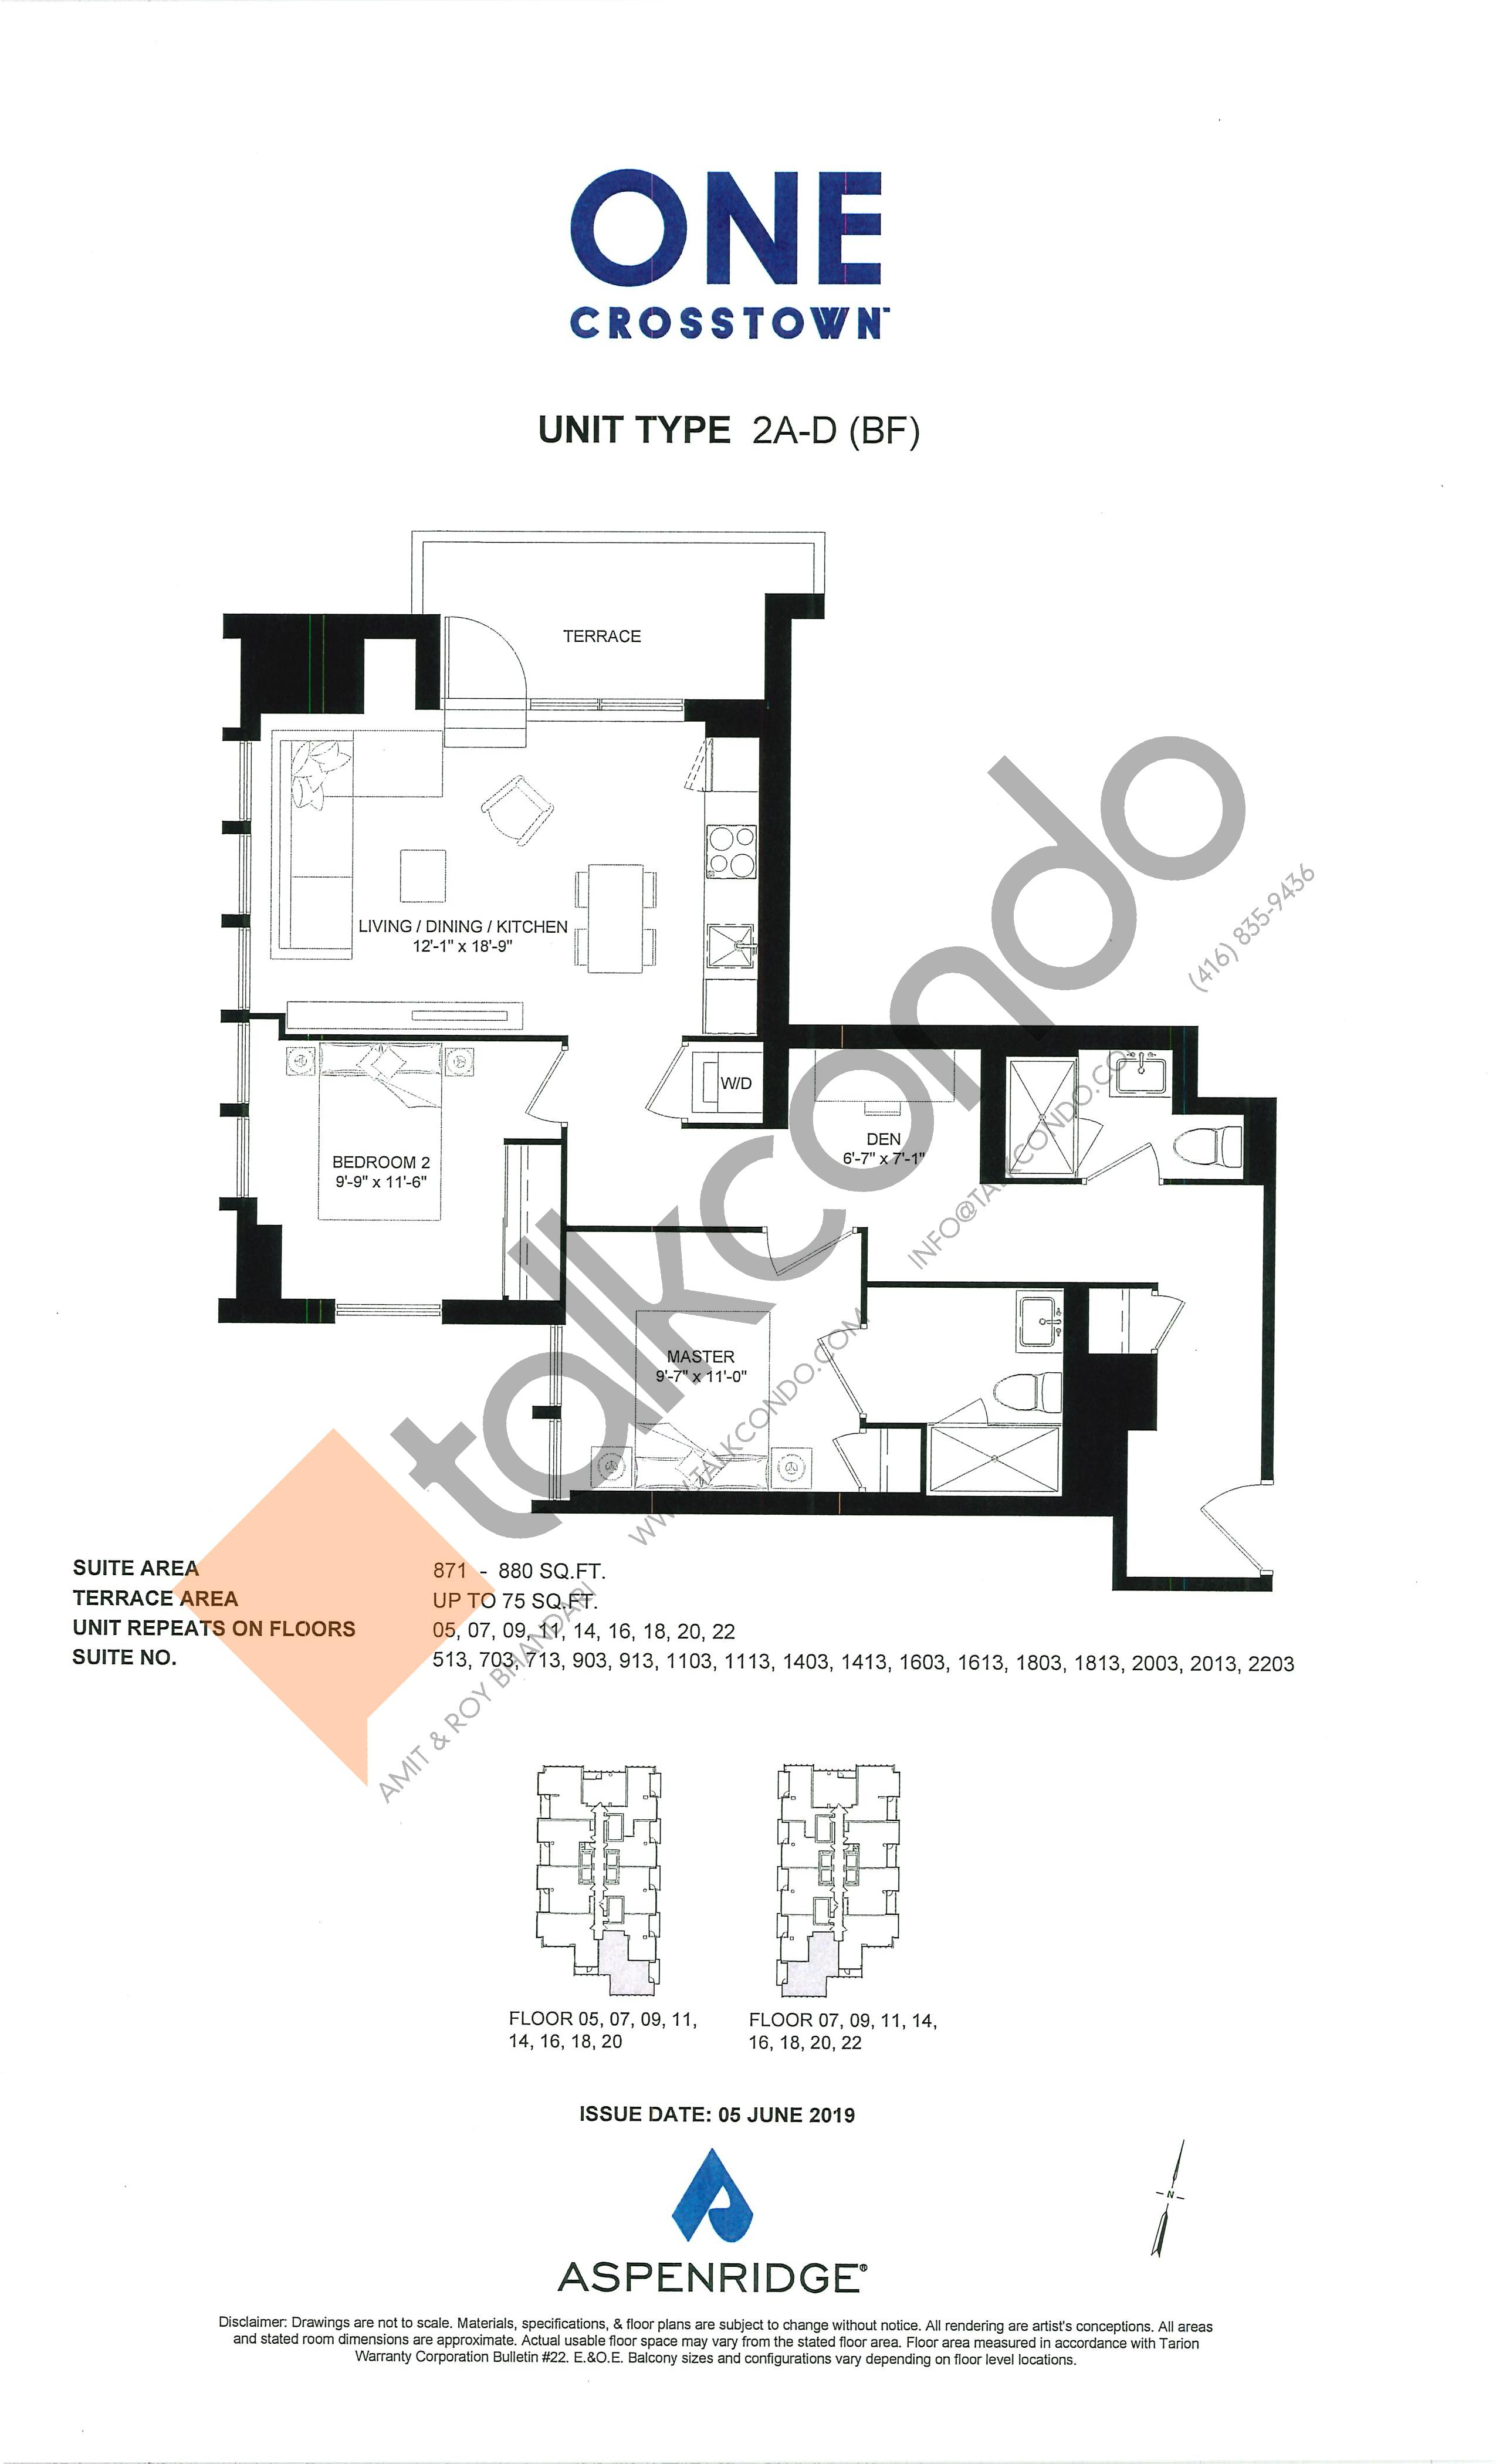 2A-D (BF) Floor Plan at One Crosstown Condos - 880 sq.ft